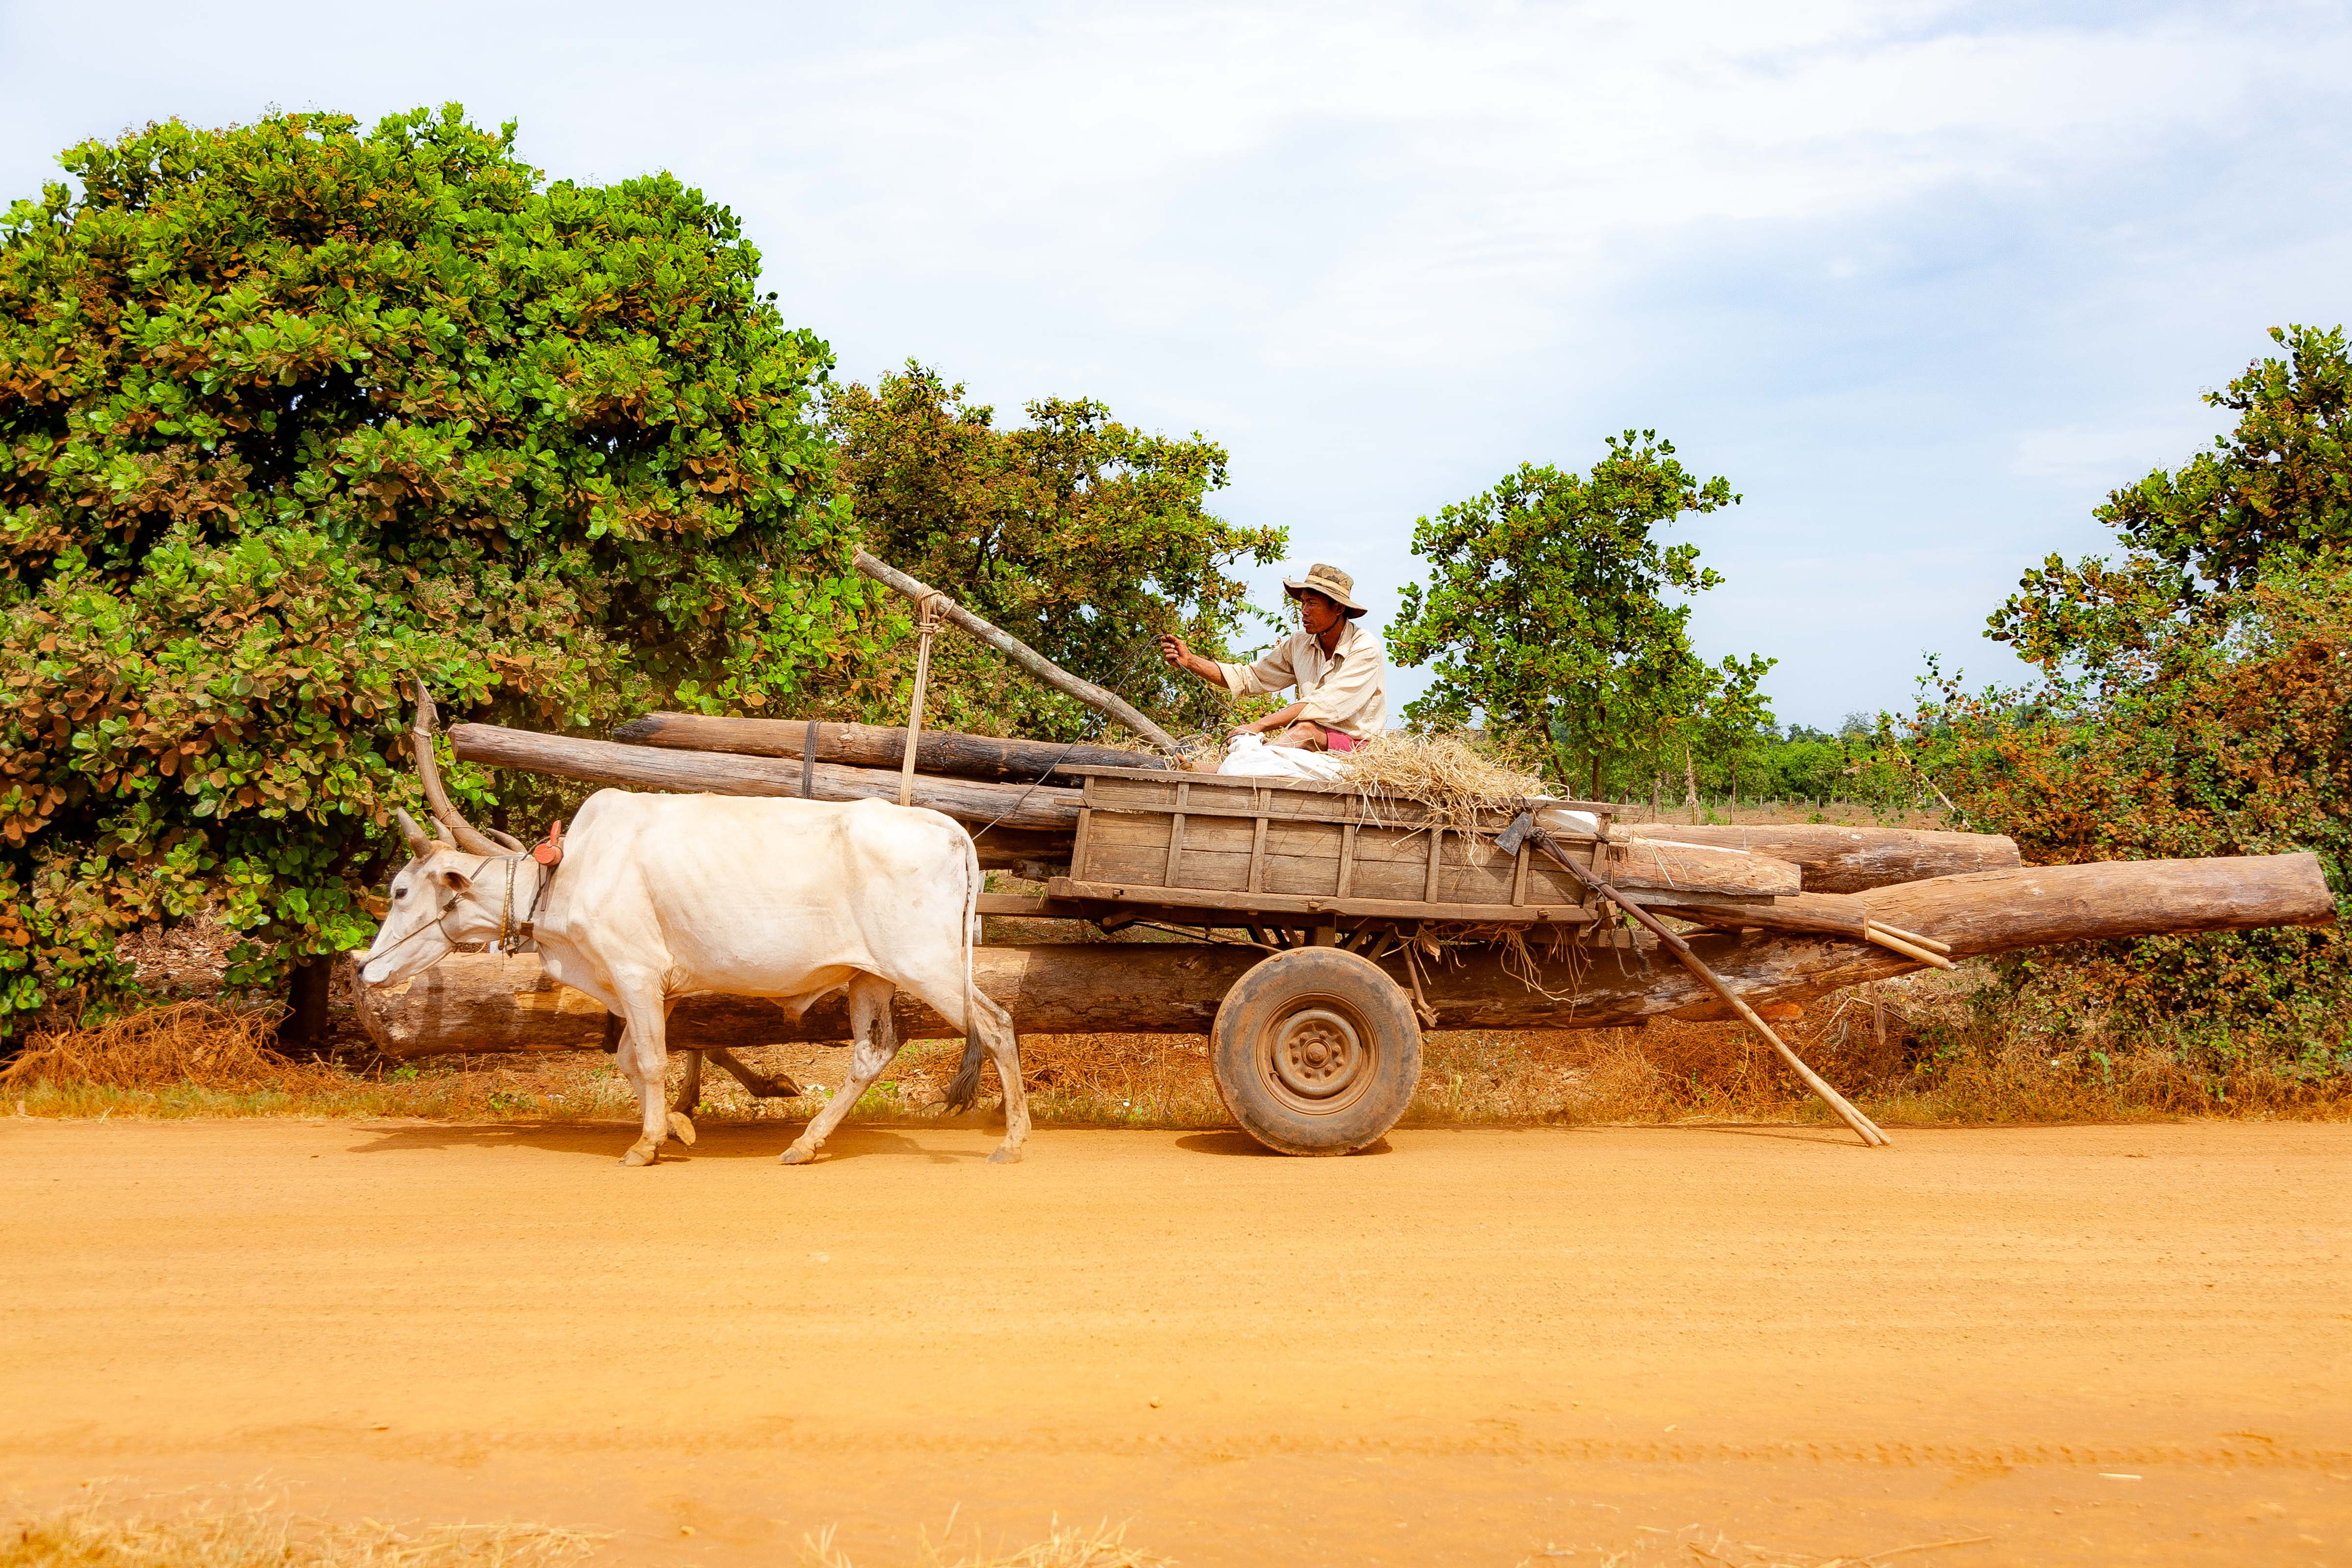 Cambodia, Kampong Chaam Prov, Cow Drawn Logging Cart, 2010, IMG 5429